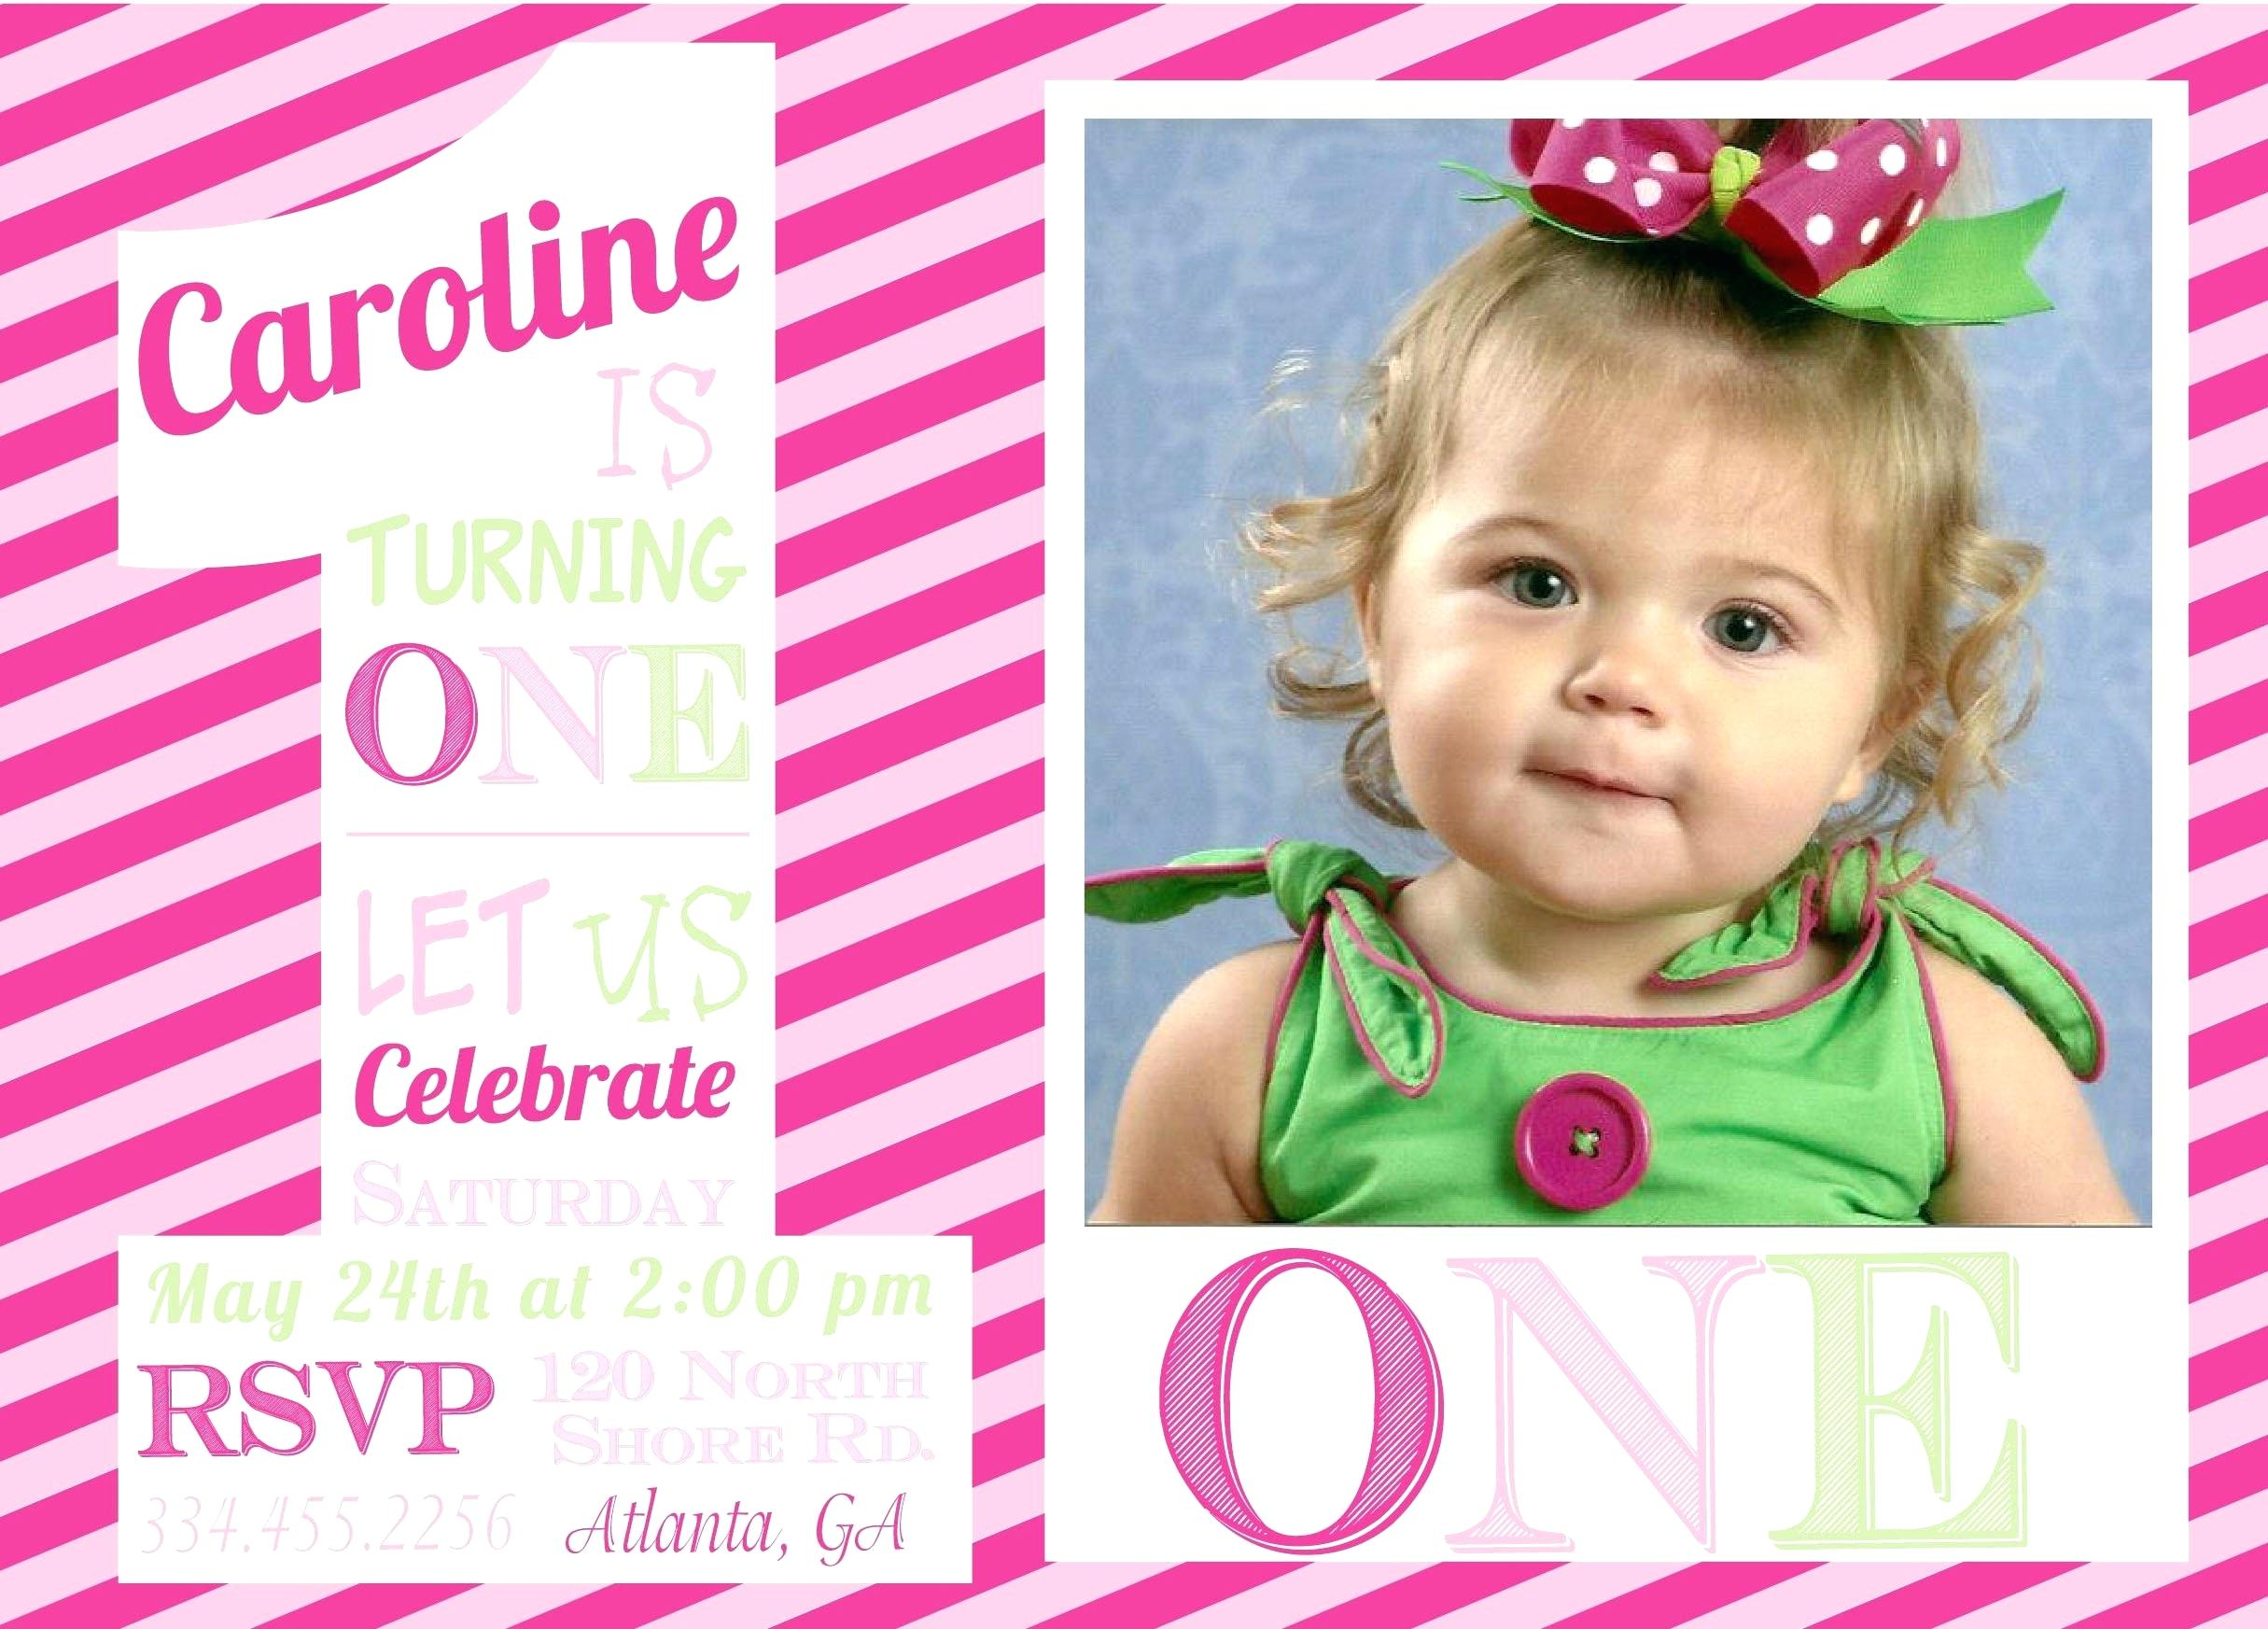 birthday invitation photoshop template ; birthday-invitation-photoshop-template-card-design-free